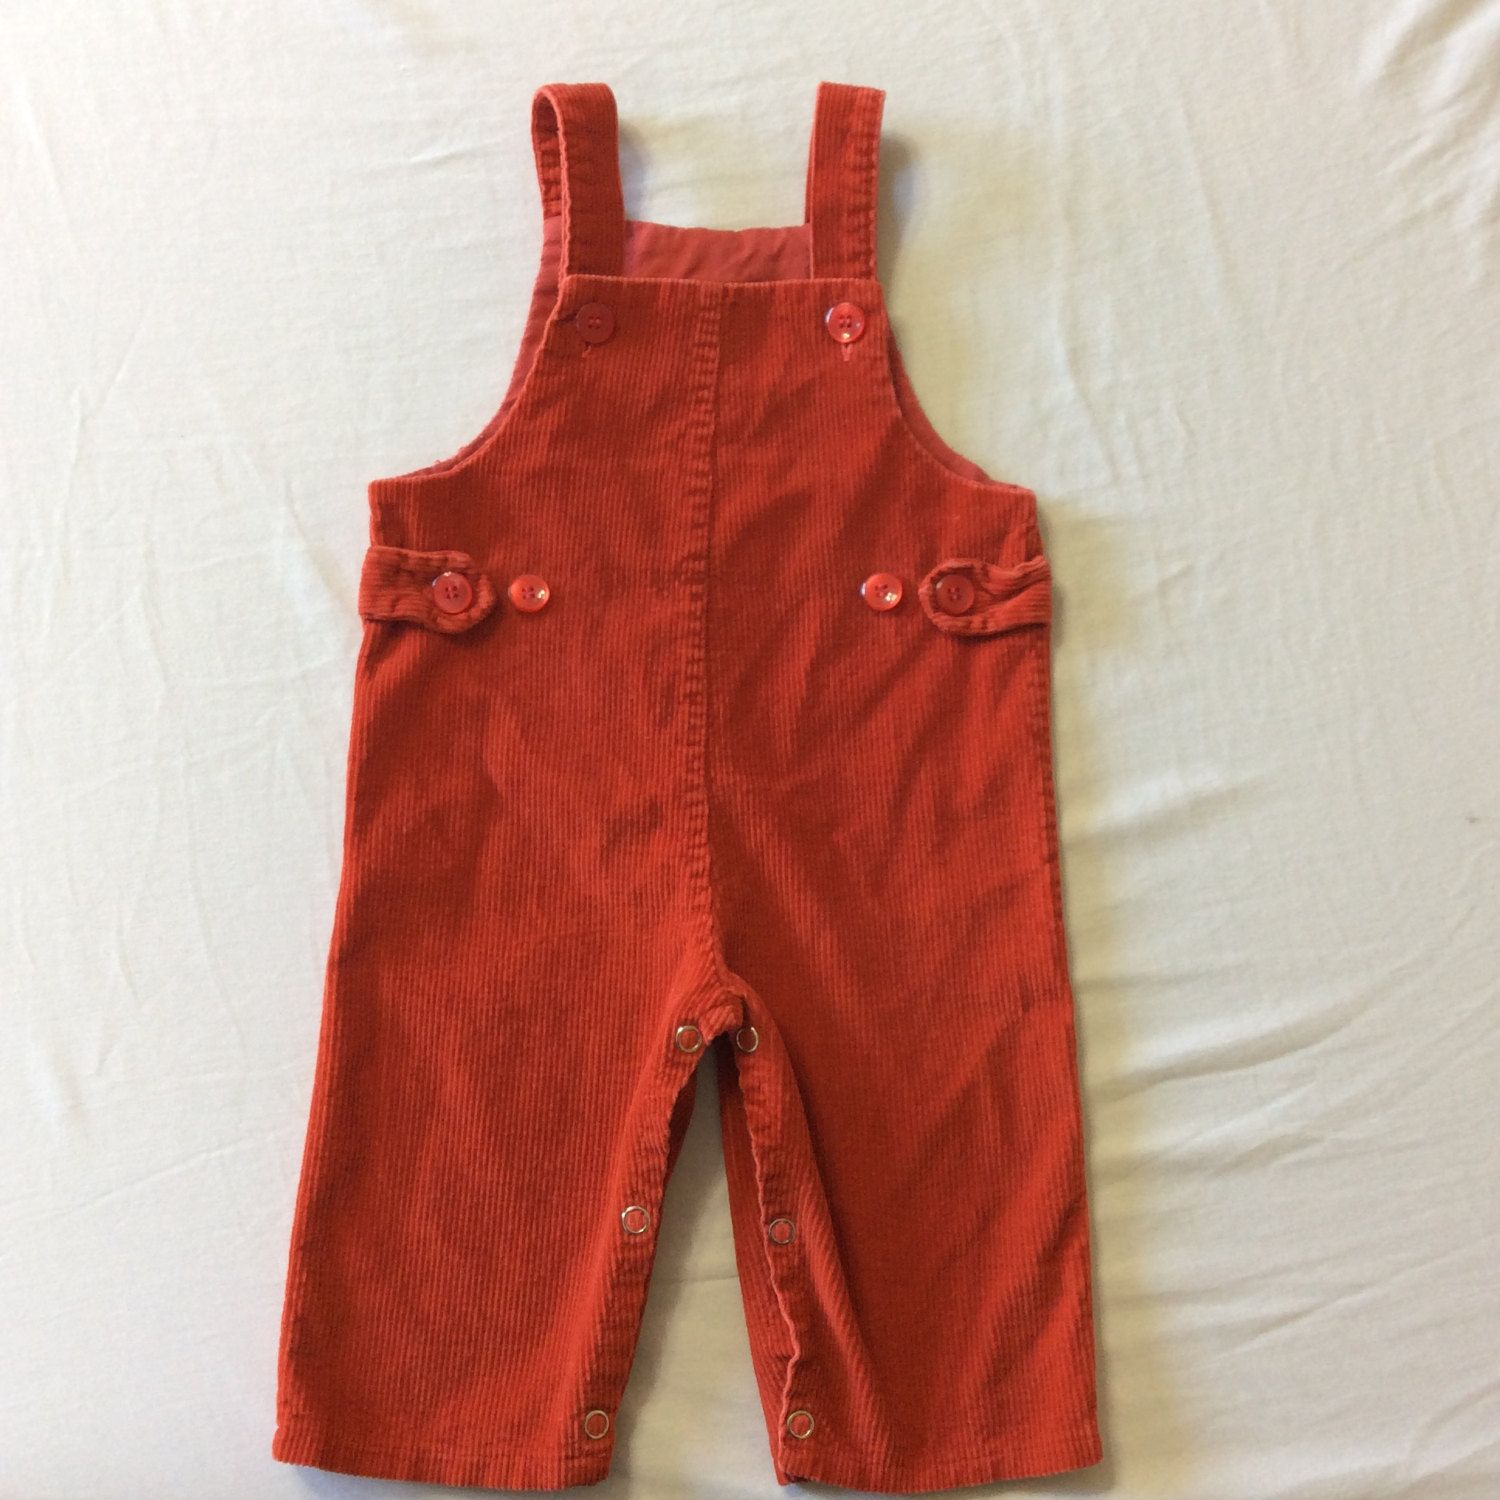 Vintage Baby Overalls Vintage Baby Boy Clothes 1960 s Red